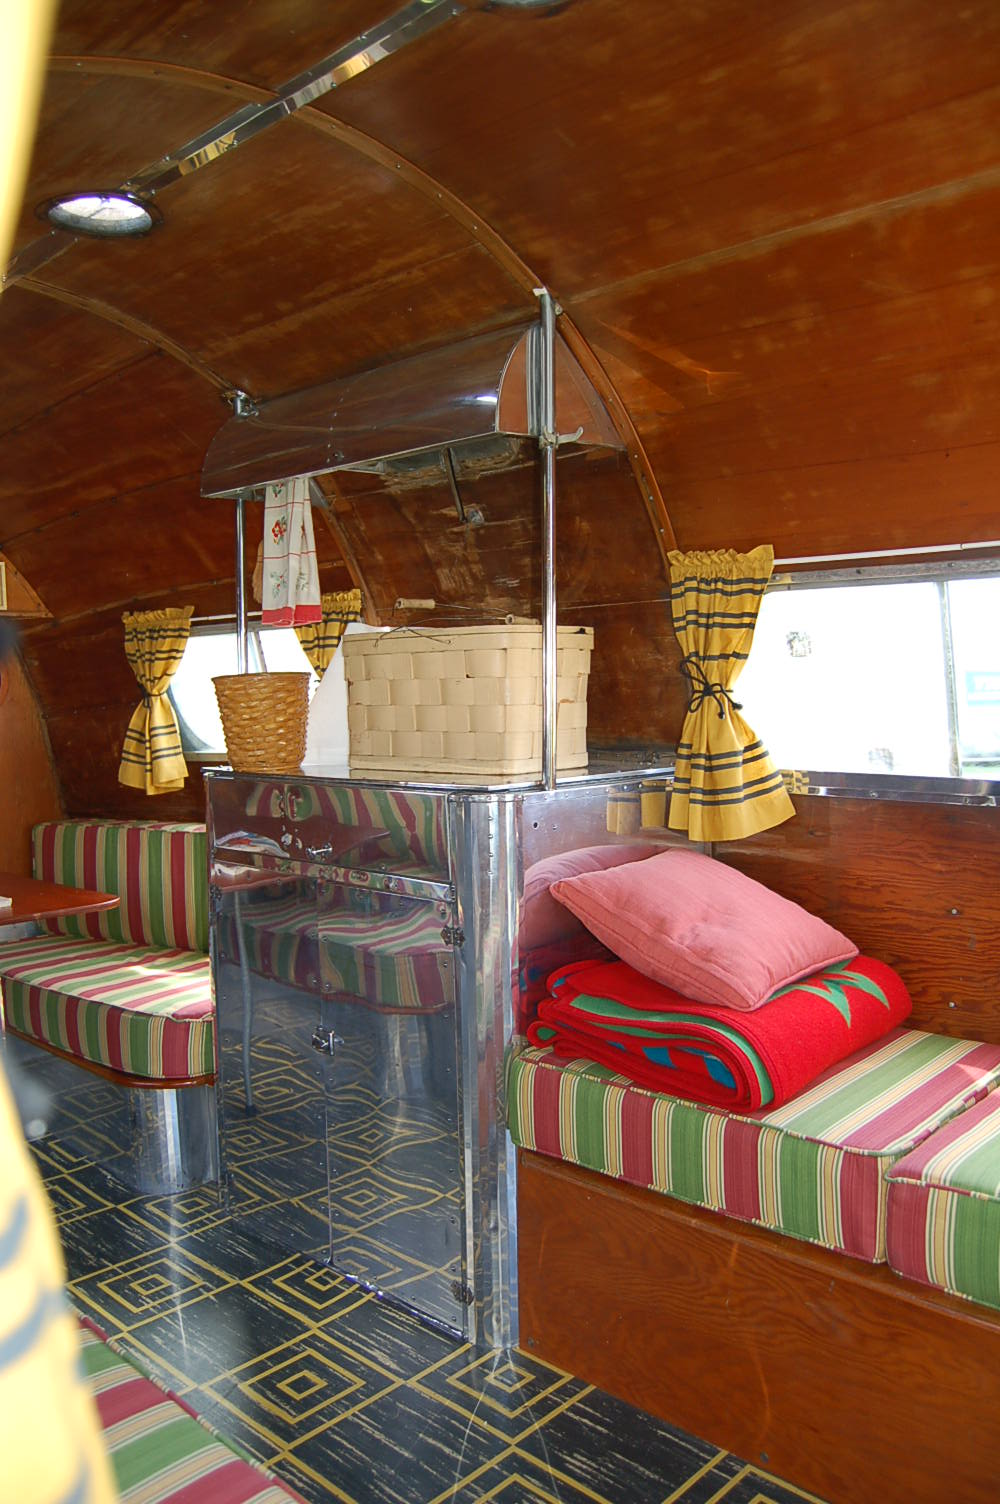 Vintage Trailer Interiors From The 1930 S From Oldtrailer Com